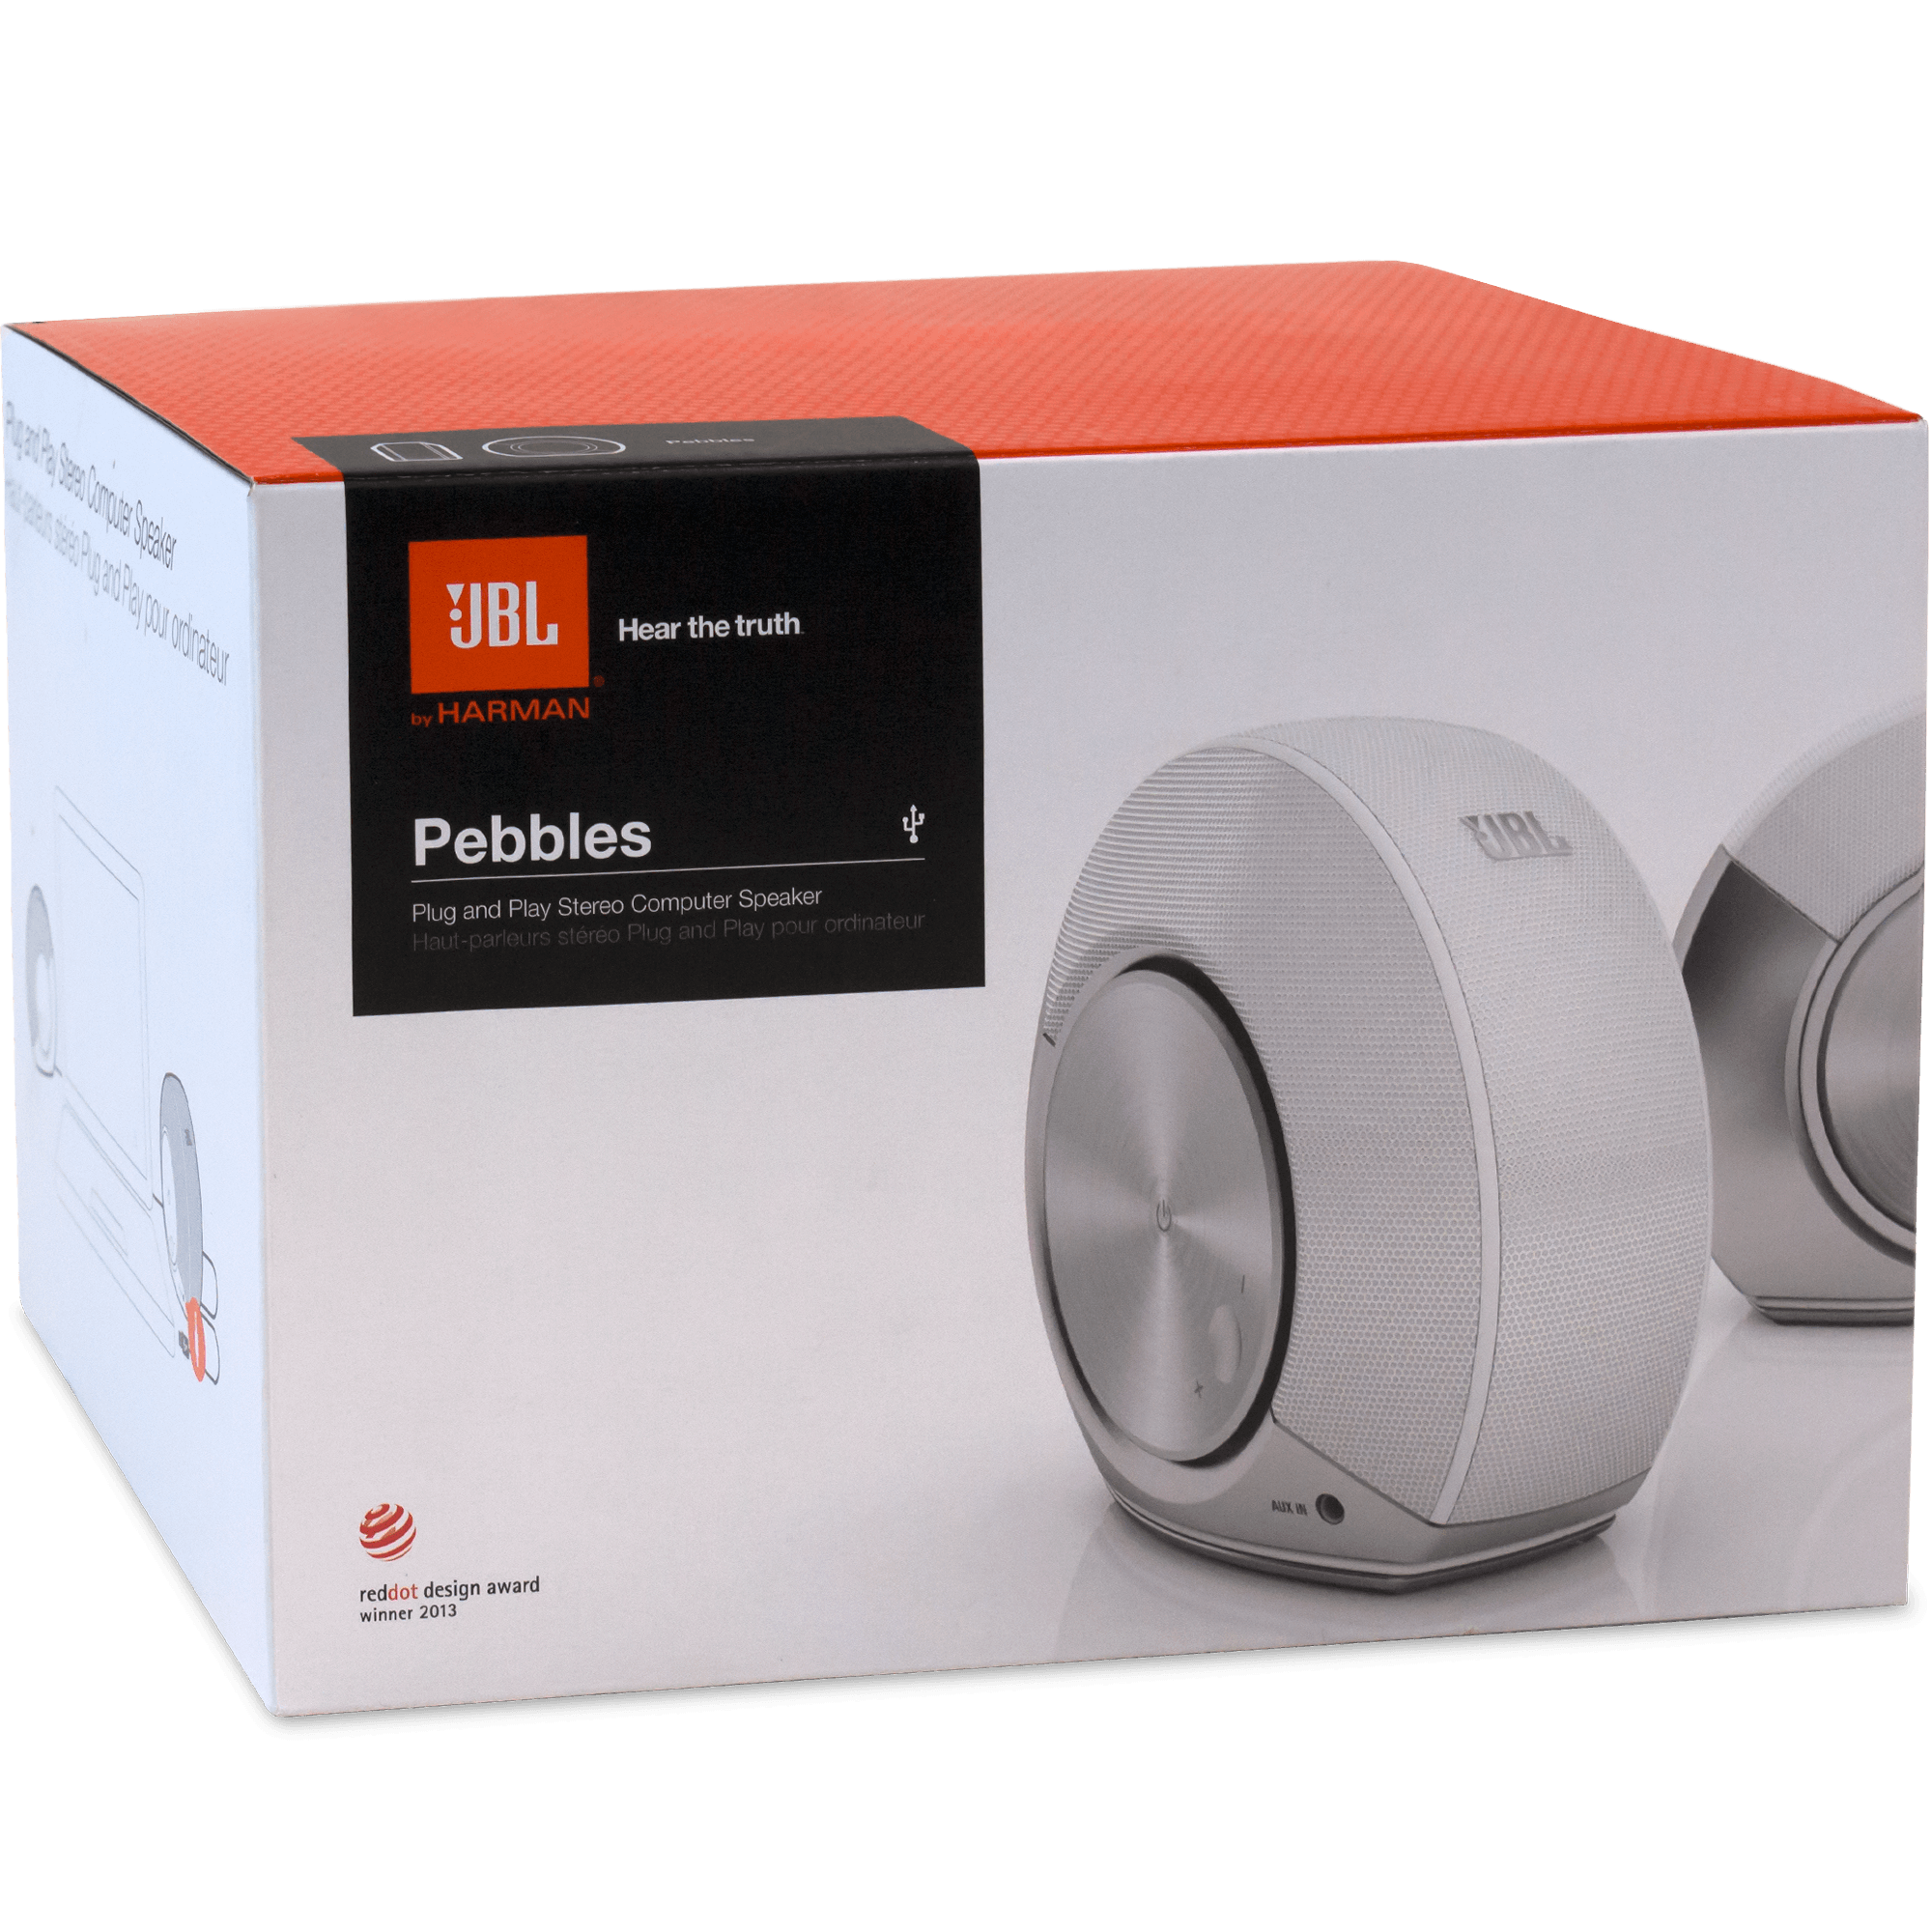 Jbl Pebbles Usb Speakers